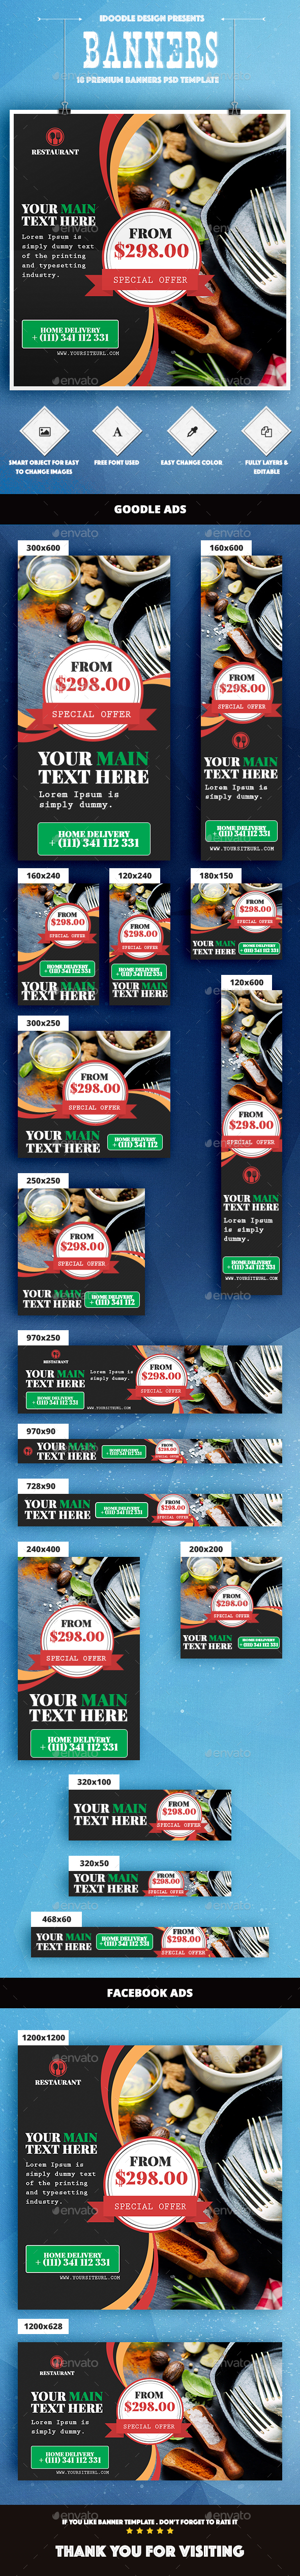 Food & Restaurant Banners Ad - Banners & Ads Web Elements